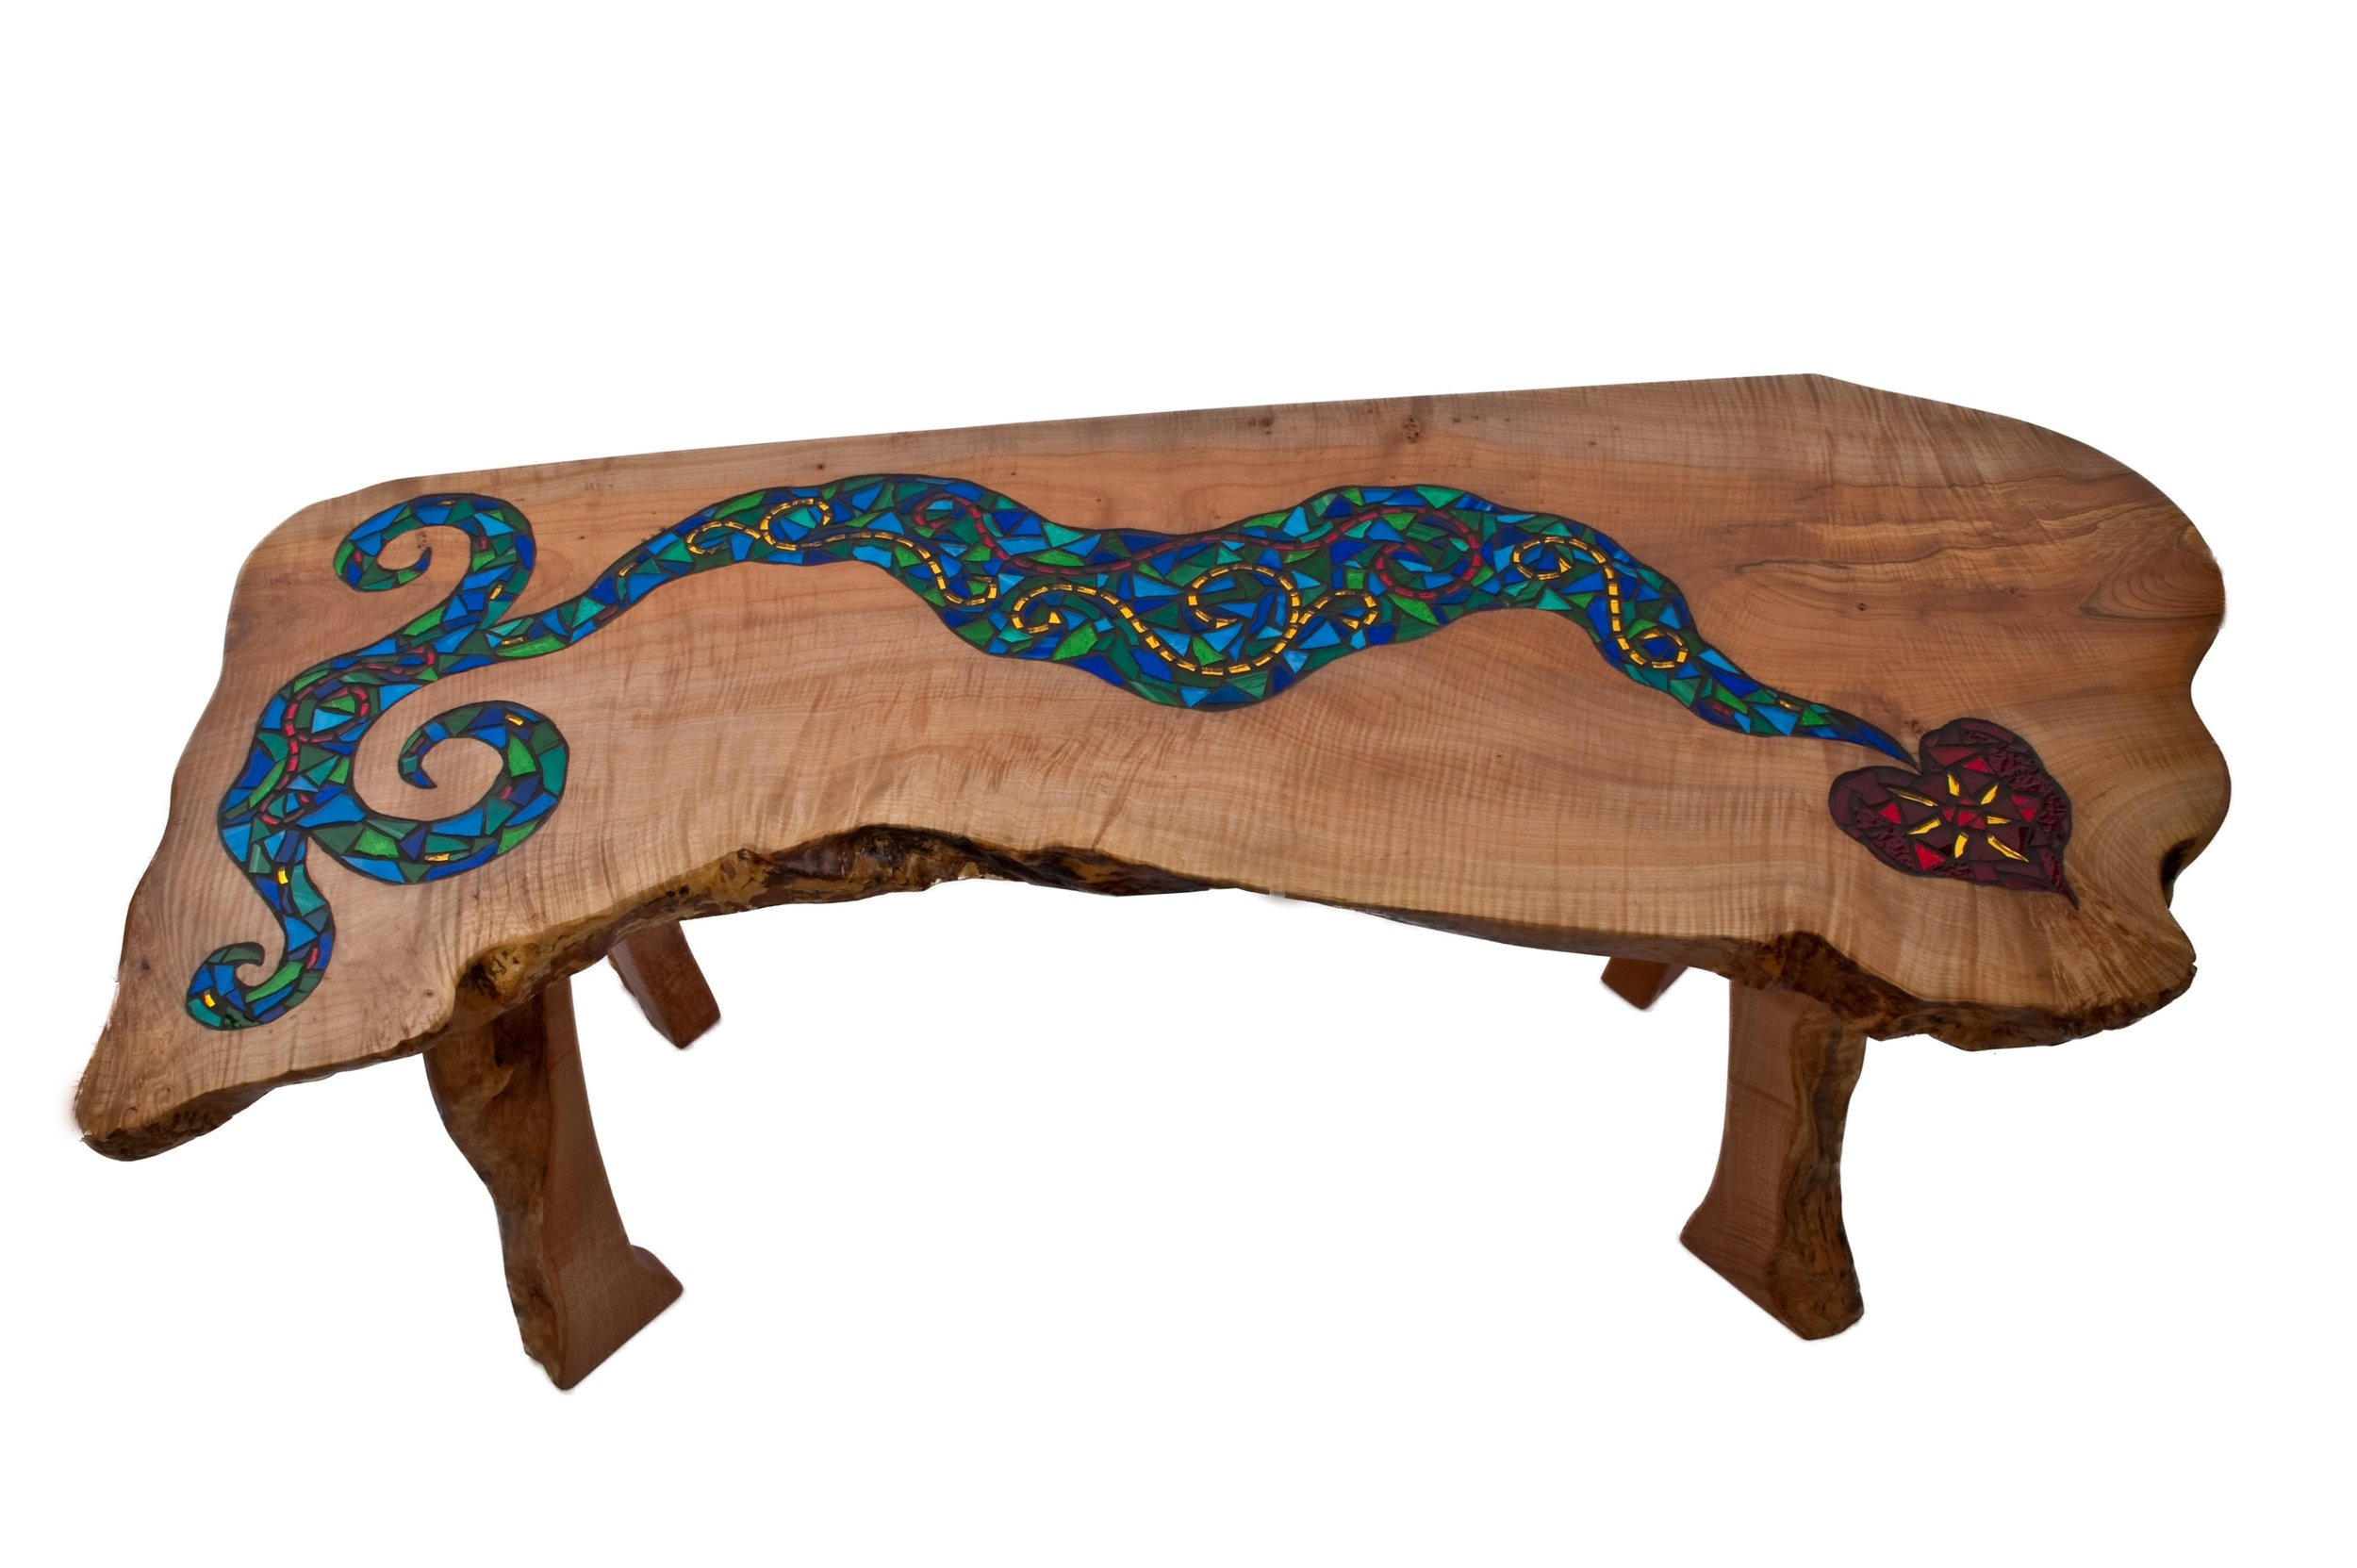 Oregon Table SOLD